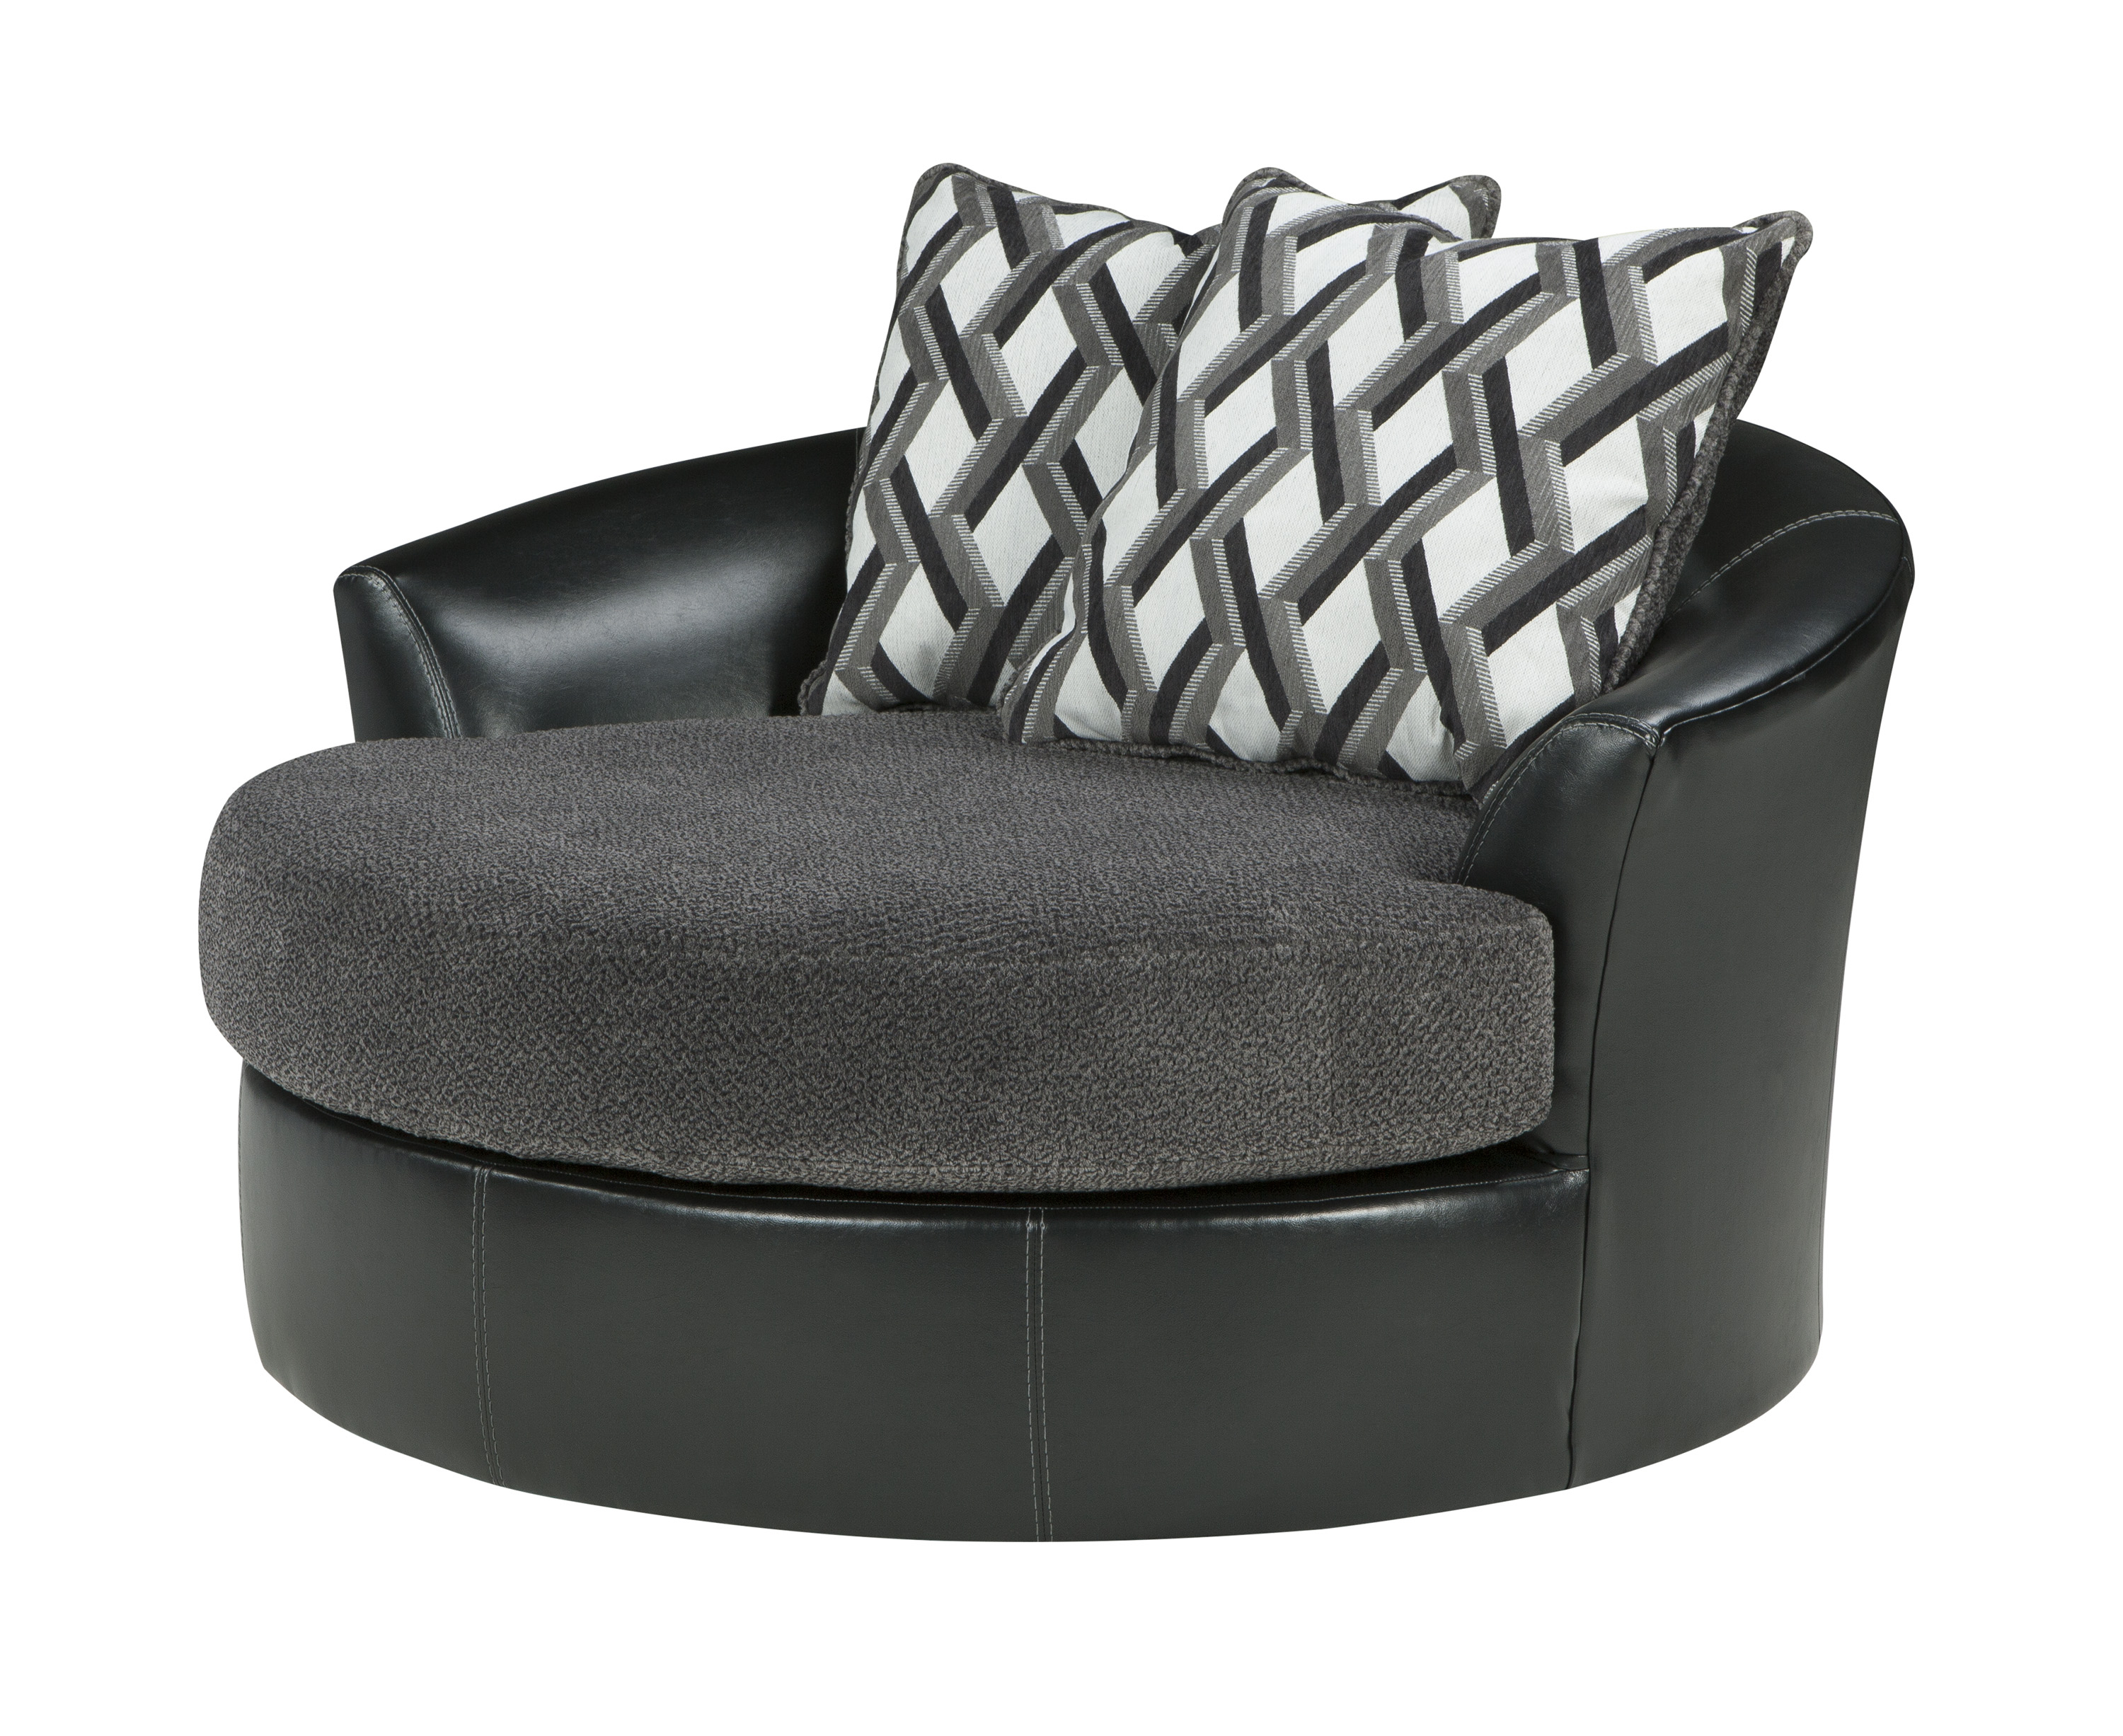 Sofa With Swivel Chair With Recent Kumasi Over Sized Swivel Chair – Sofas Plus (View 13 of 20)